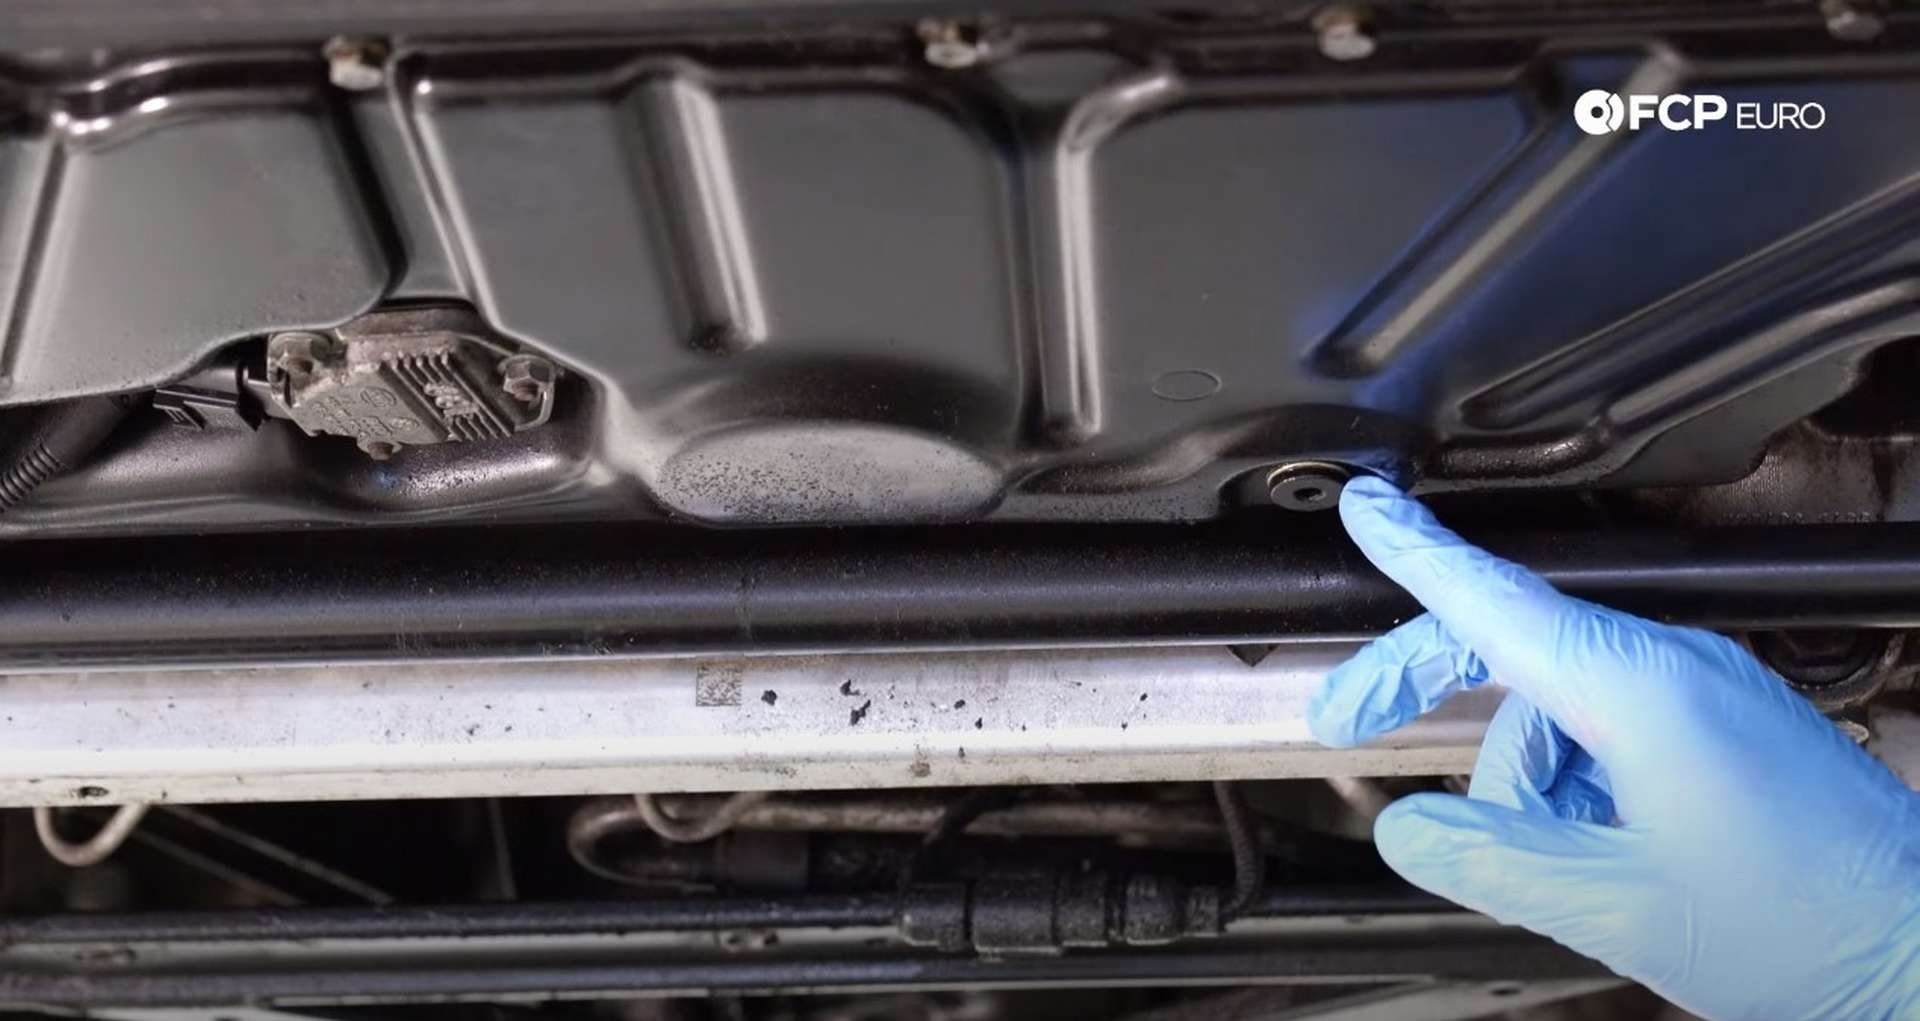 DIY Audi 4.2 V8 Oil Change drain plug location